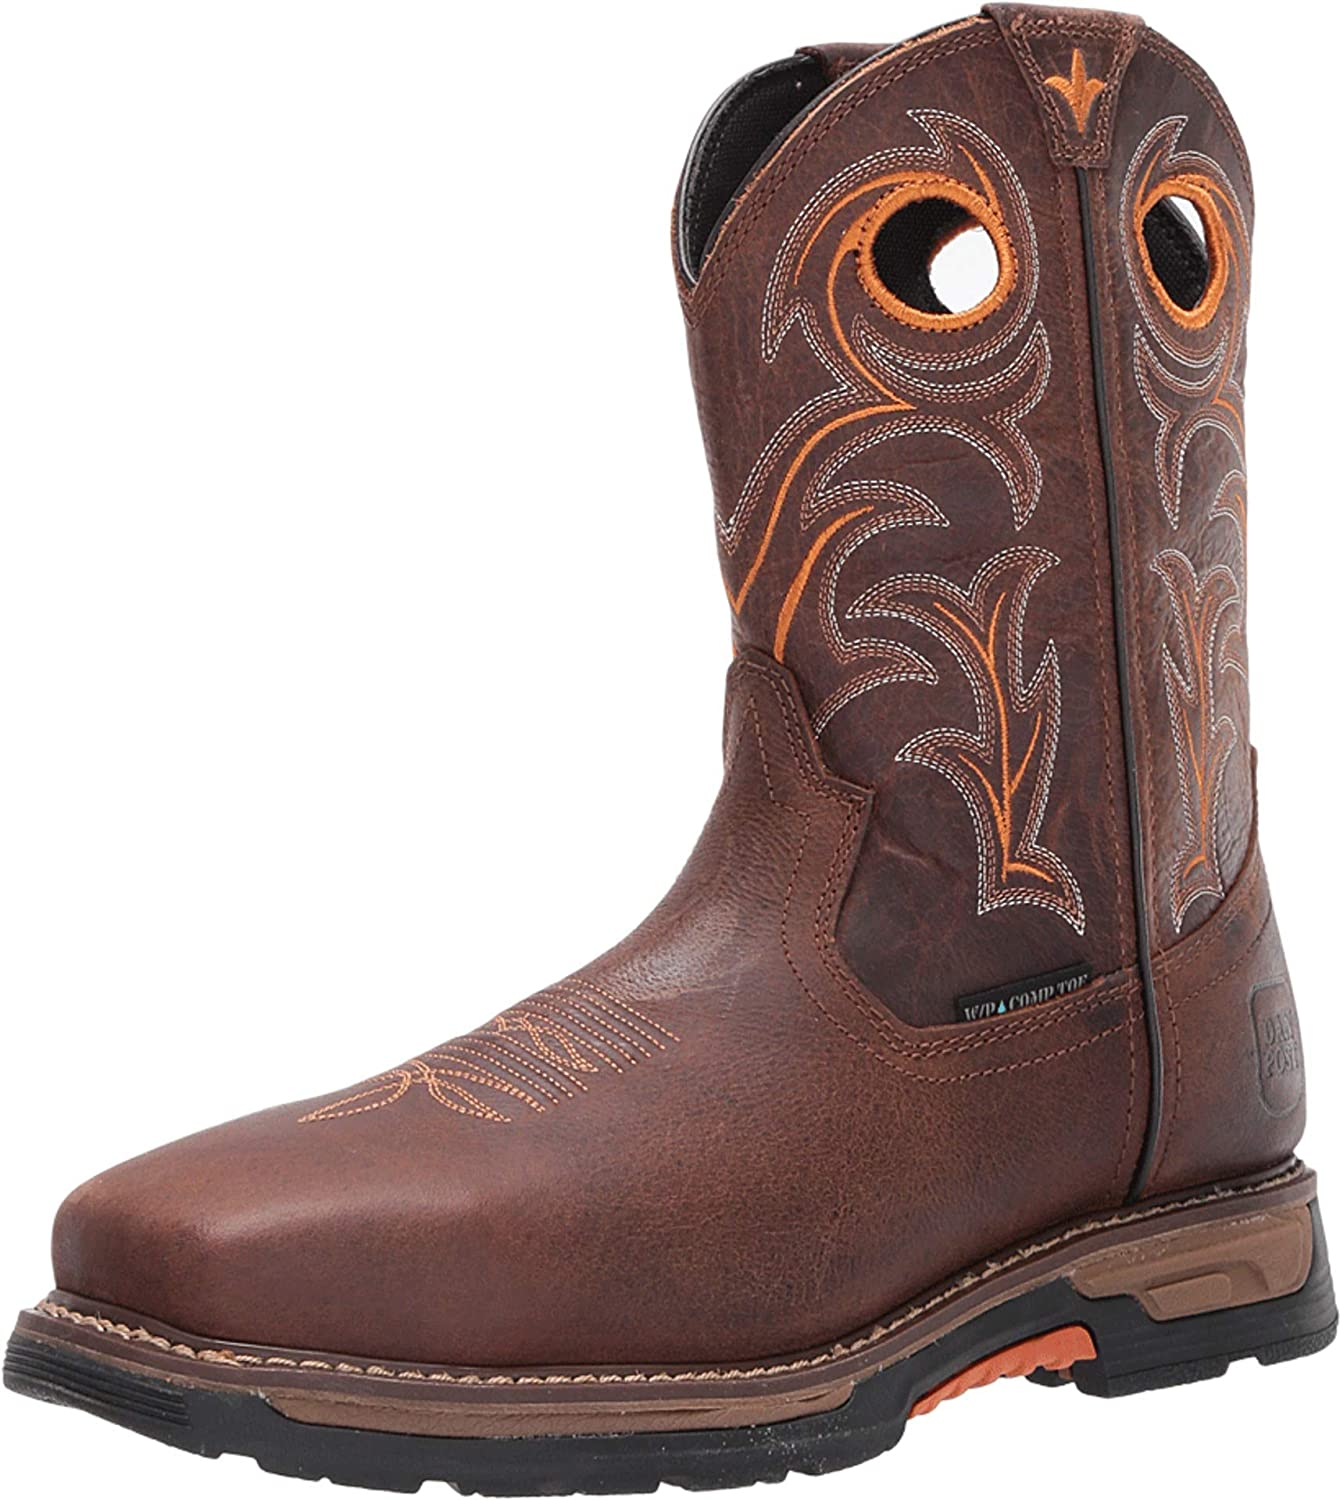 Dan Post Boots Mens Storms Eye Waterproof Eh Composite Toe Work Work Safety Shoes Casual - Brown - Size 11 D